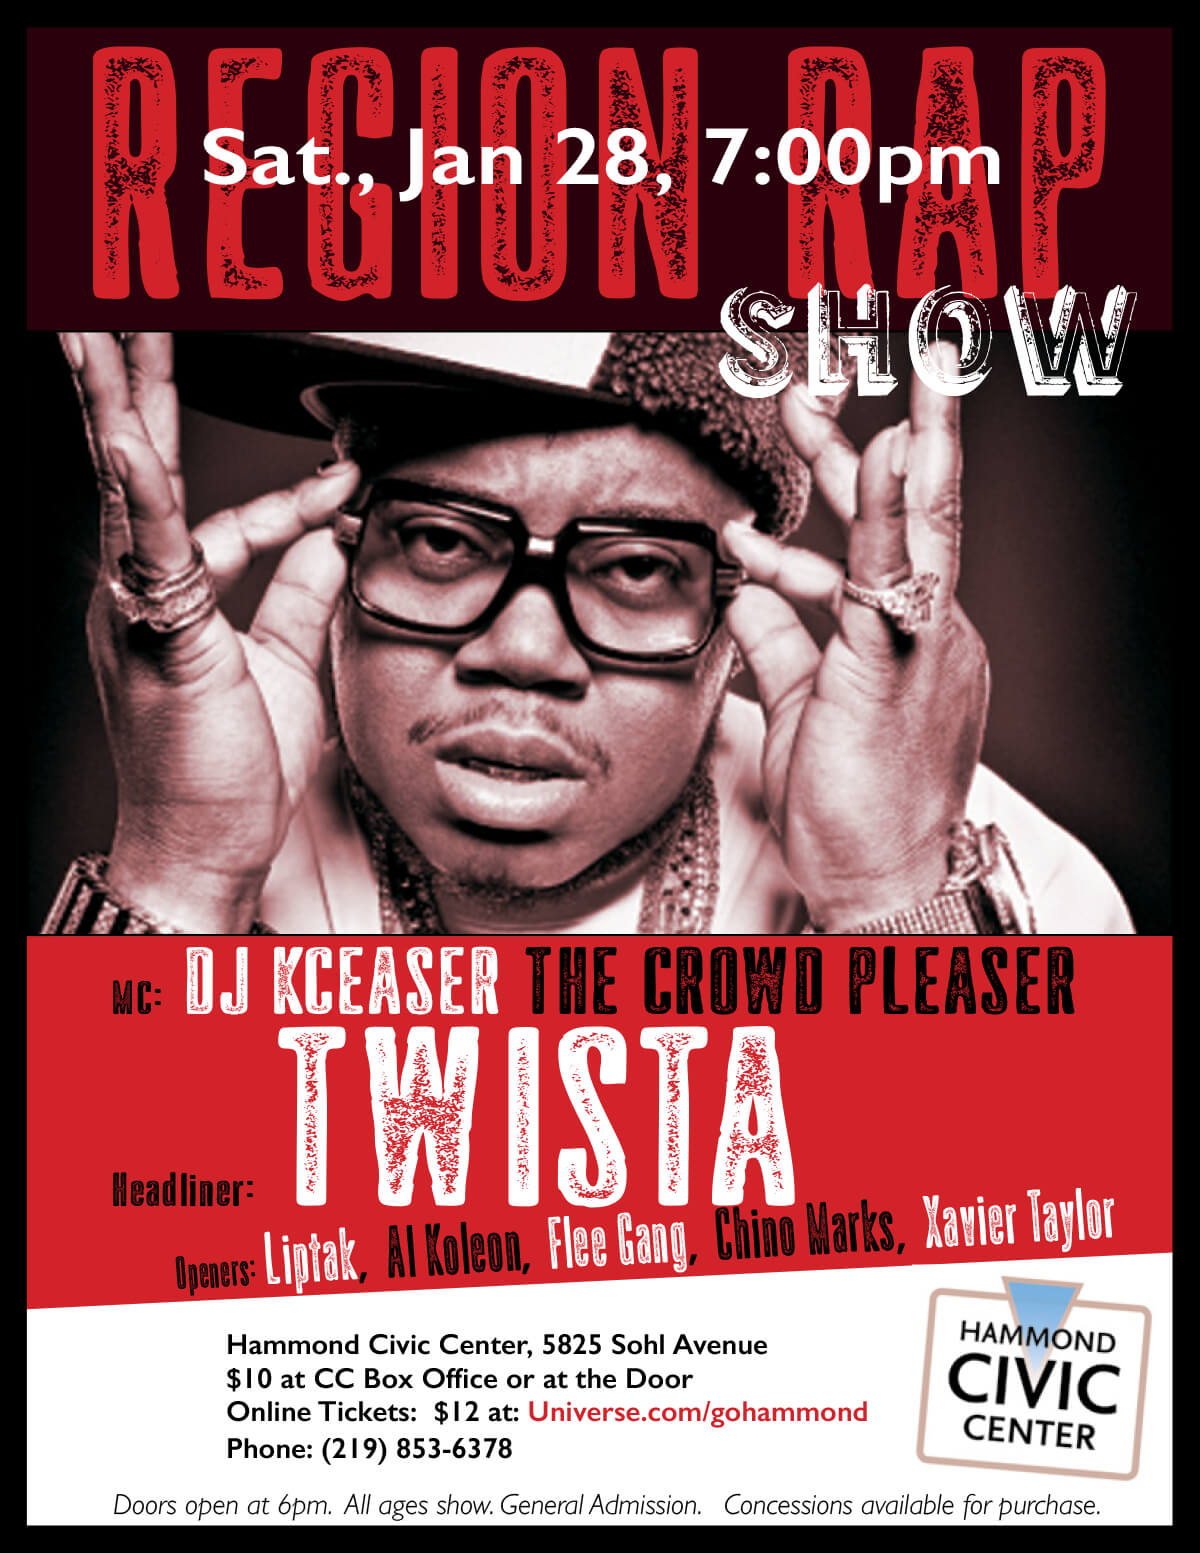 Region Rap ShowSaturday, January 28, 2017Doors Open: 6pmShow Time: 7pmMC: DJ KCeaser the Crowd PleaserHeadliner: TwistaOpeners: Liptak, Al Koleon, Flee Gang, Chino Marks, Xavier TaylorWhere: Hammond Civic Center, 5825 S. Sohl AvenueTickets: online at Universe.com/gohammond for $12 orCivic Center Box Office: $10Phone: (219) 853-6378All Ages Show. General Admission. Concessions Available for purchase.